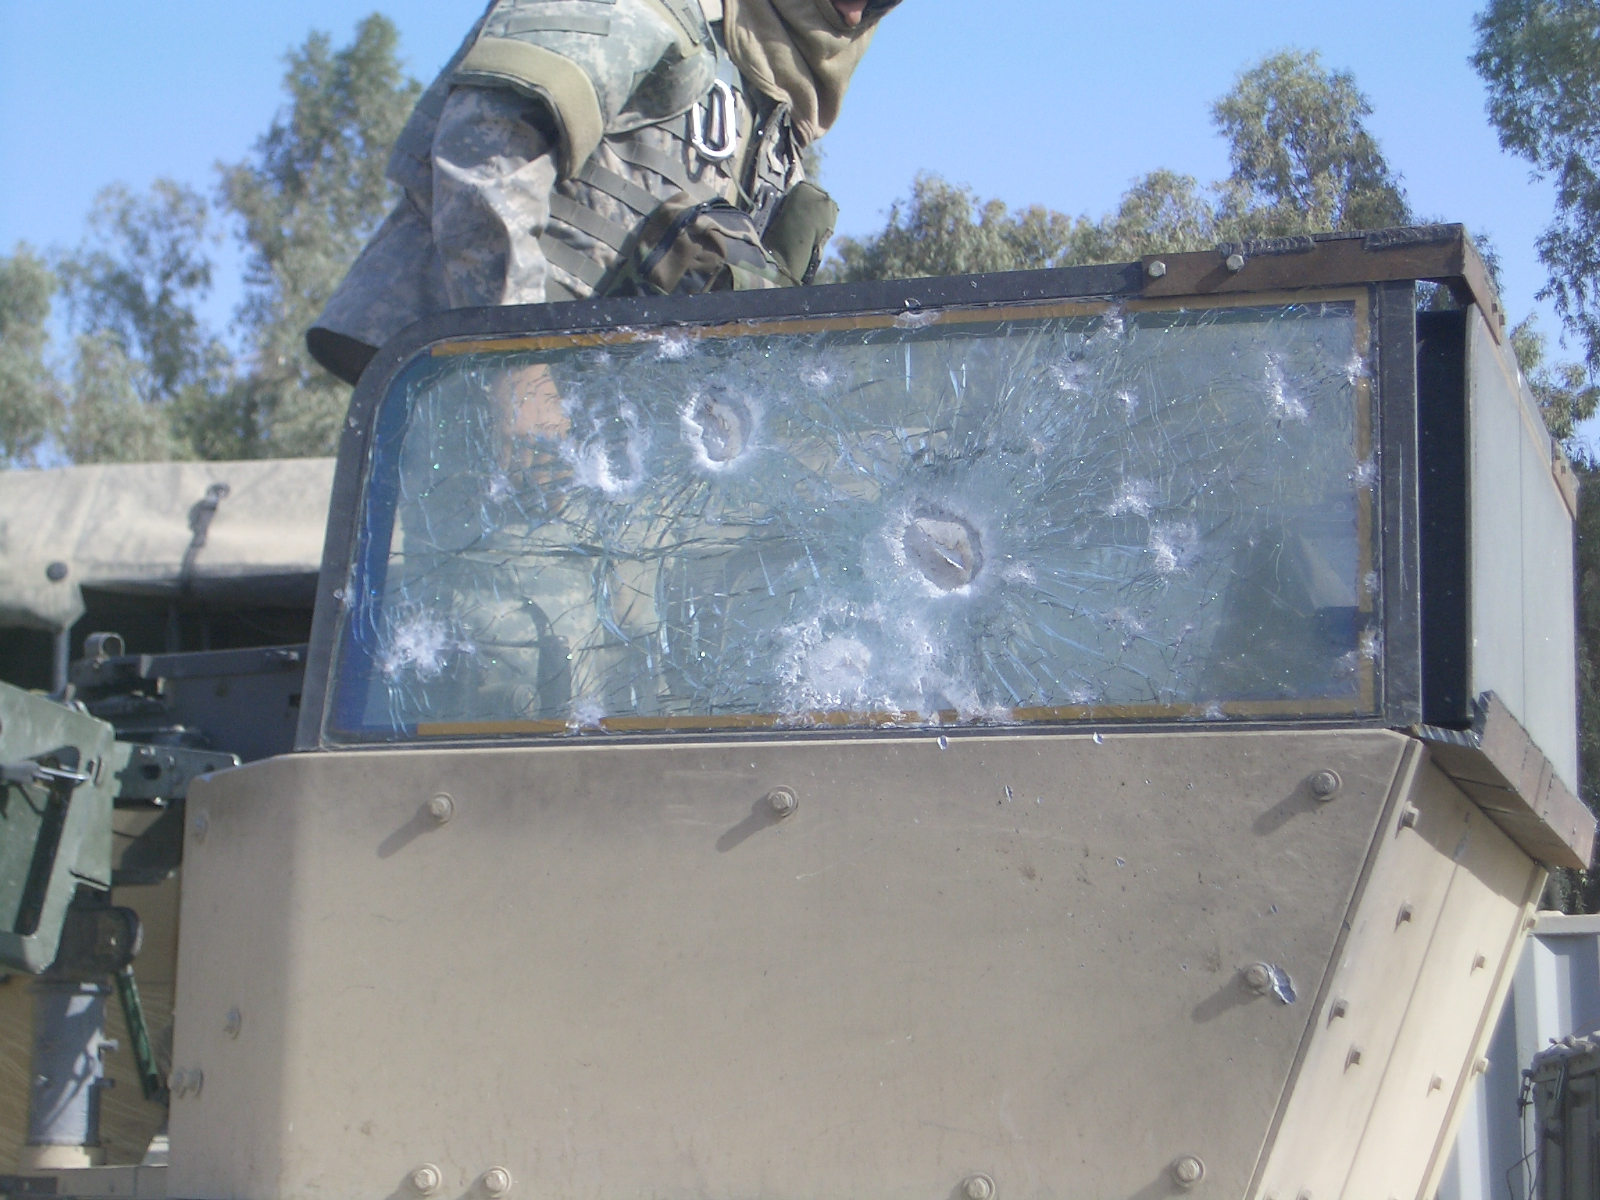 <!  :en  >Swanson Shield Gunners Shield Protecting U.S. Infantry Warfighters in Iraq<!  :  >